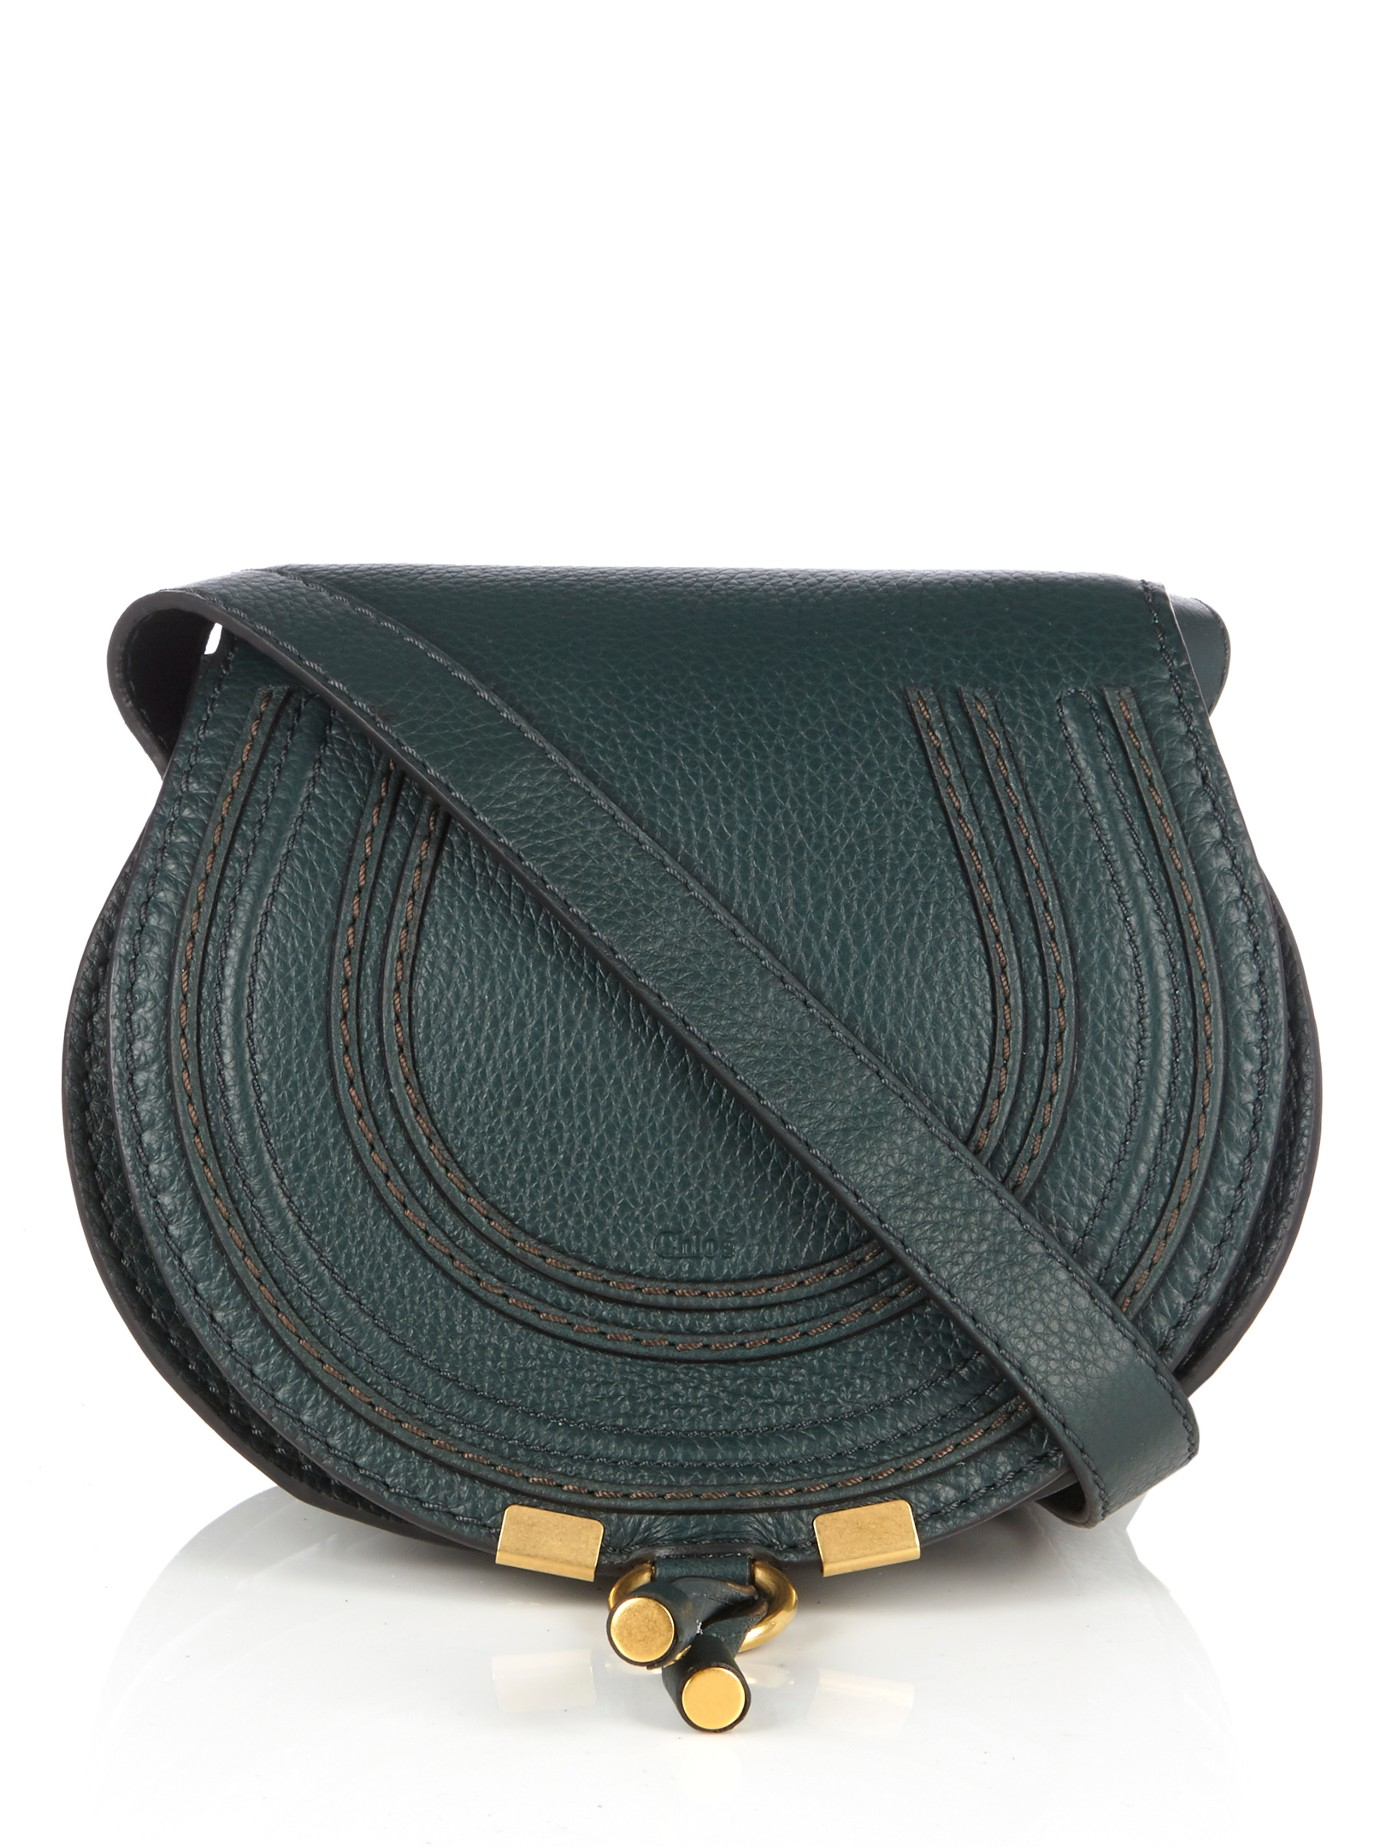 88790208996e Lyst - Chloé Marcie Small Leather Cross-body Bag in Green